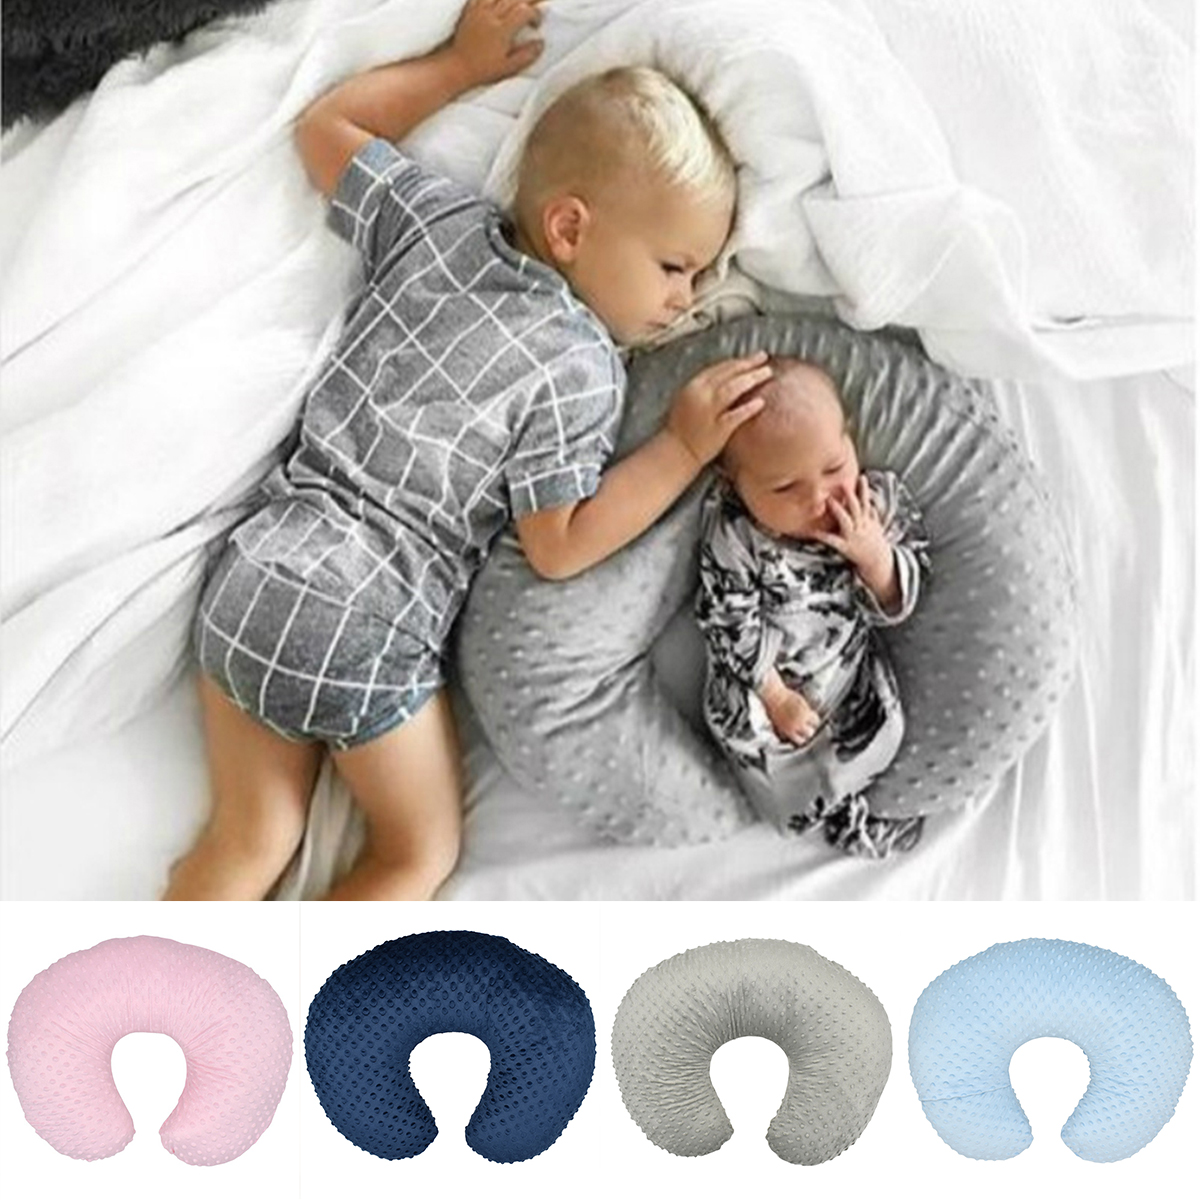 2020 New Baby U-Shaped Breastfeeding Pillow Nursing Pillow Cover Soft Slipcover Breastfeeding Cushion Cover Baby Shower Gift